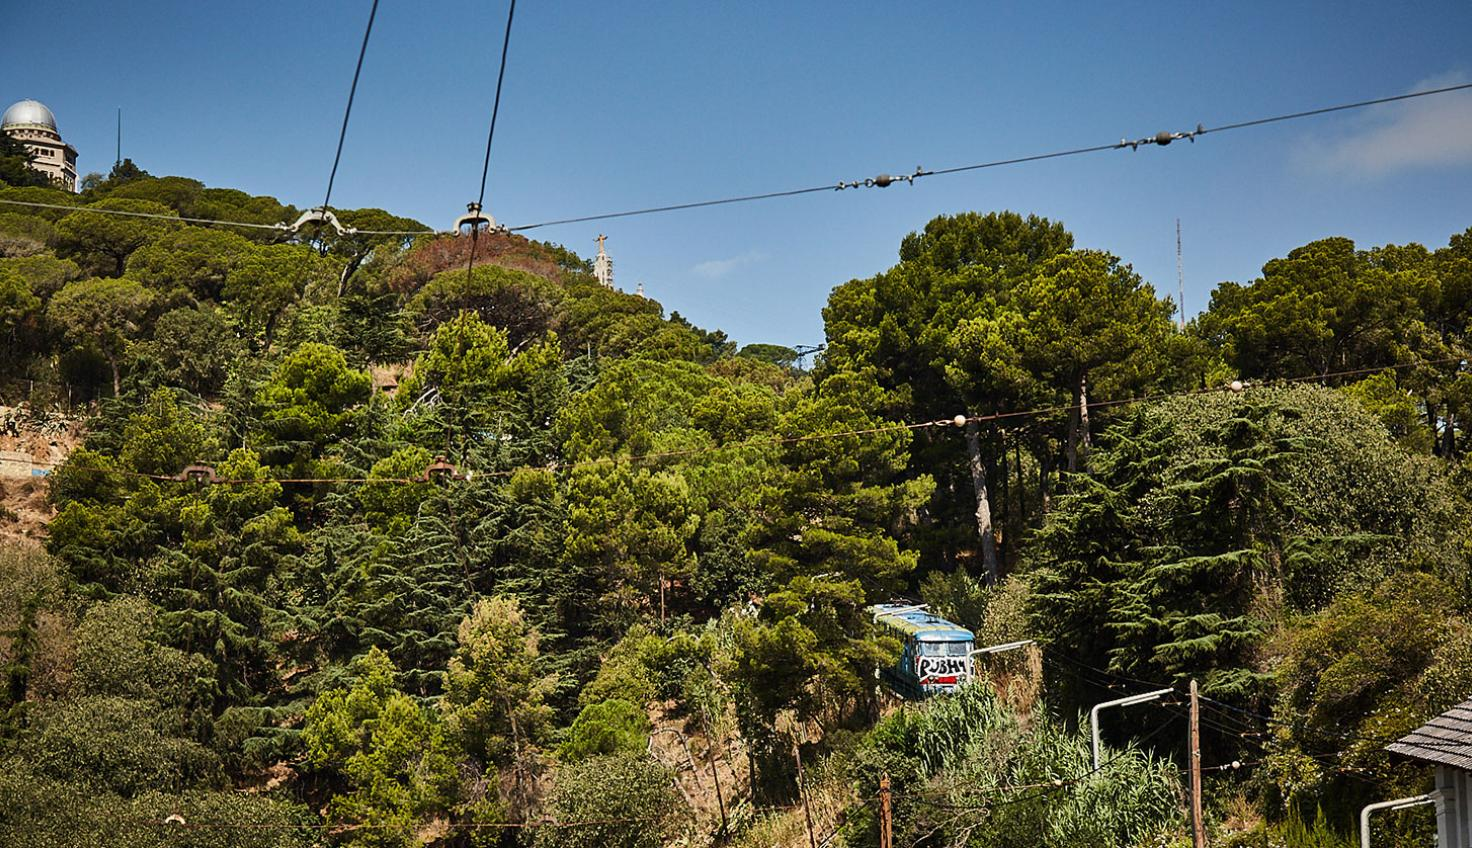 Photo Tibidabo Funicular